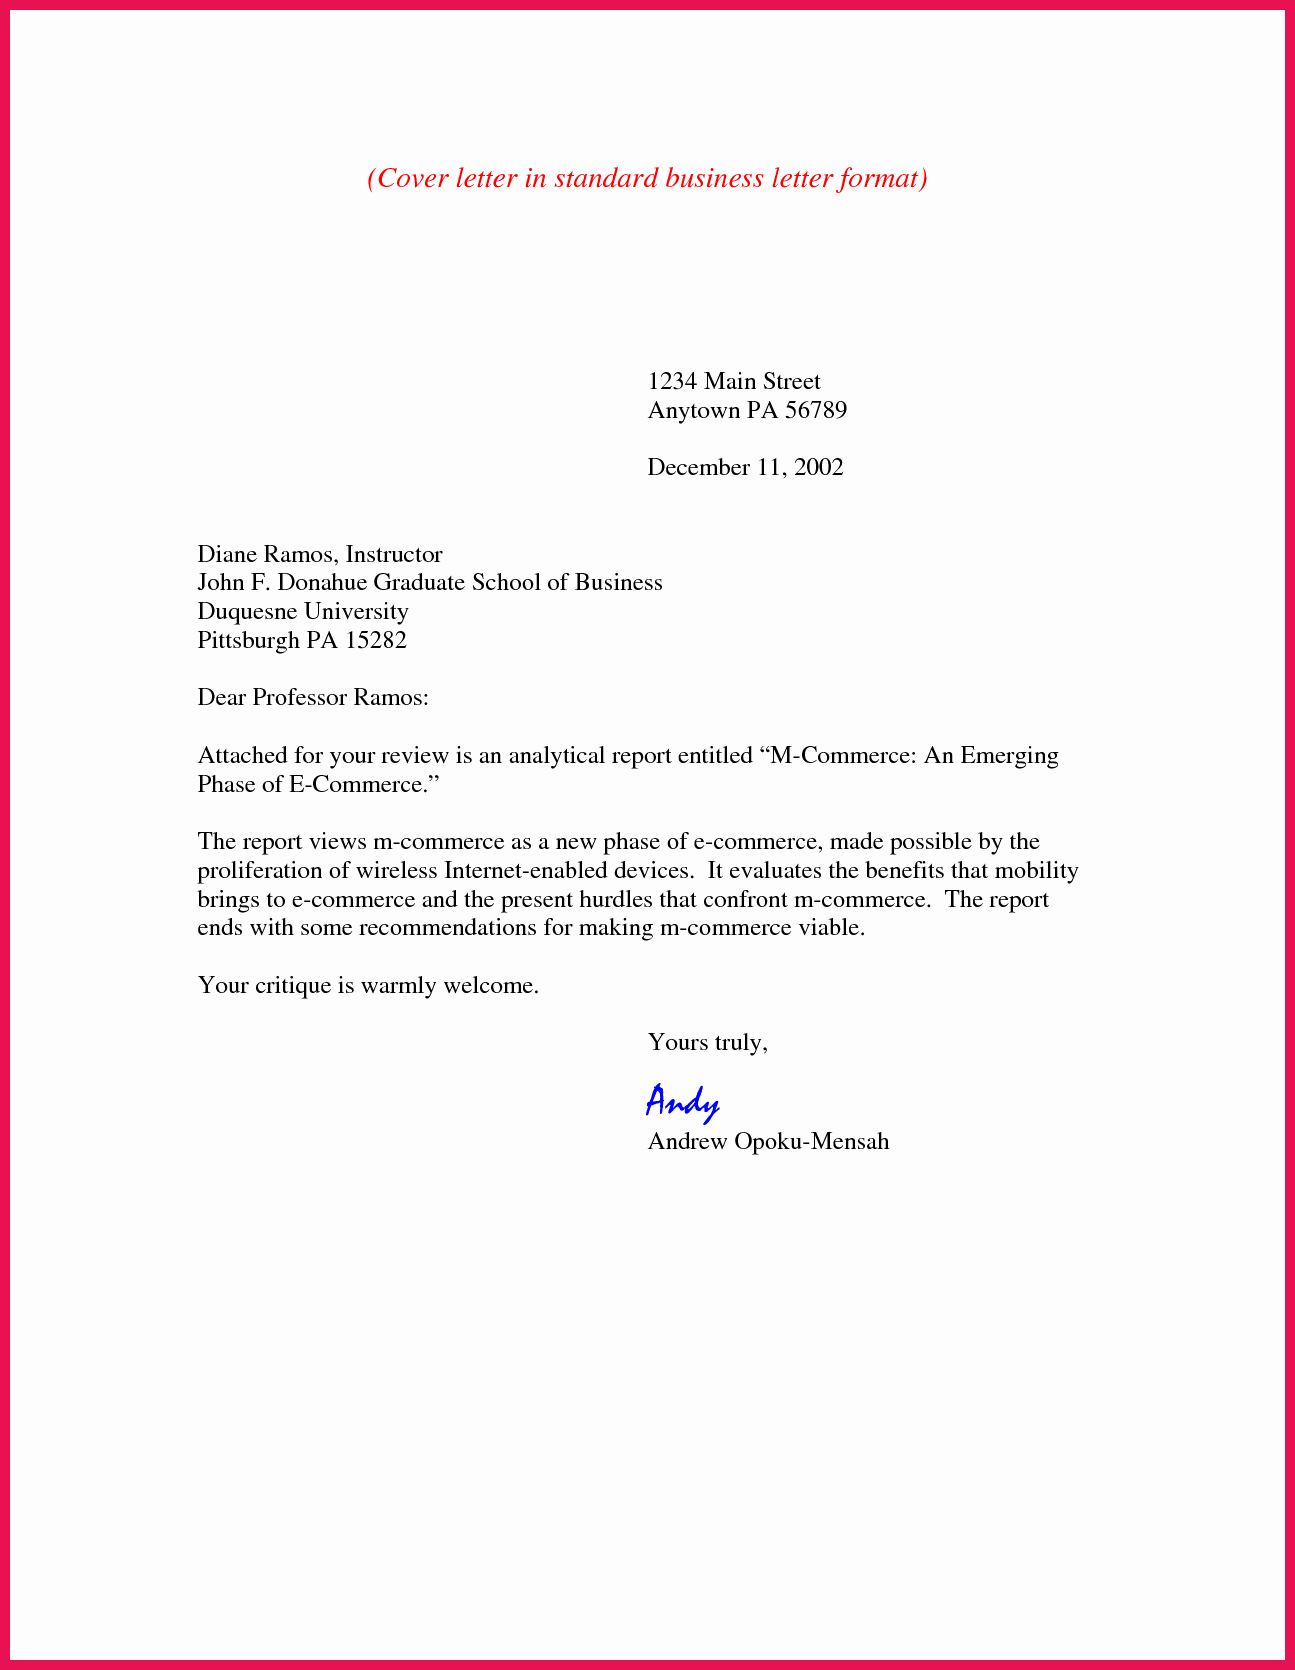 Emailed Cover Letter format Best Of Business Cover Letter format